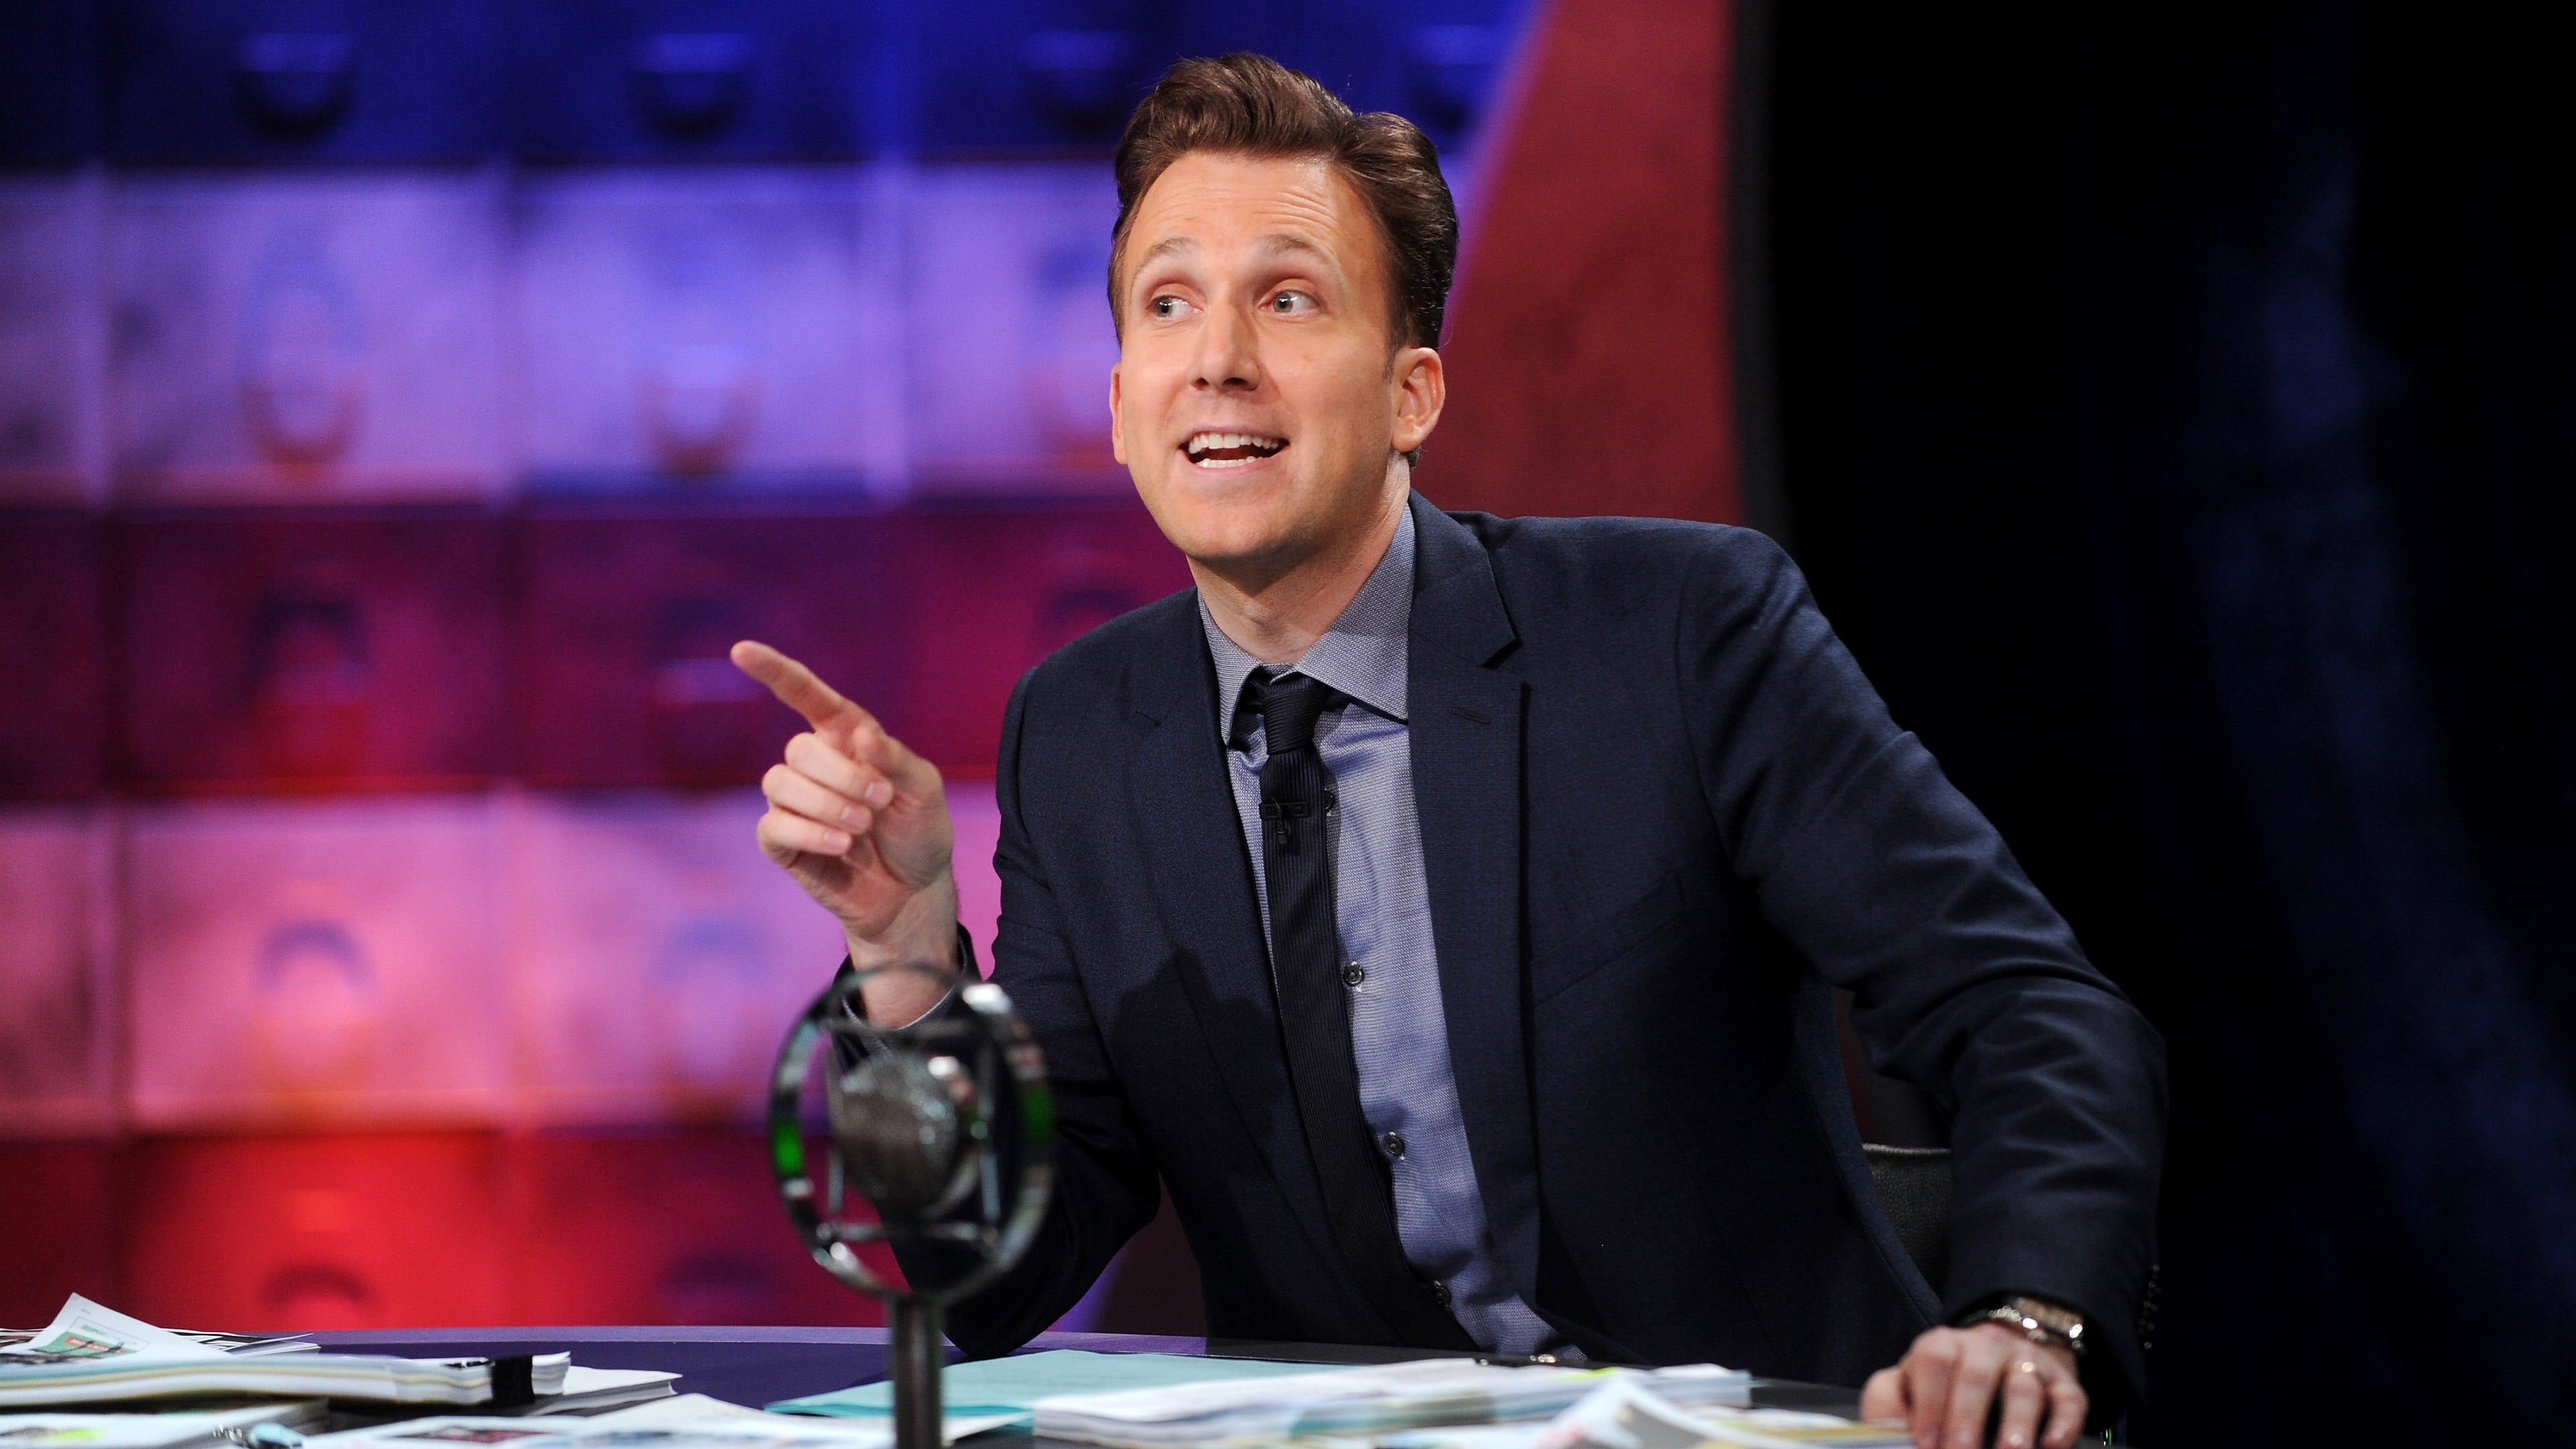 The Opposition with Jordan Klepper - Season 1